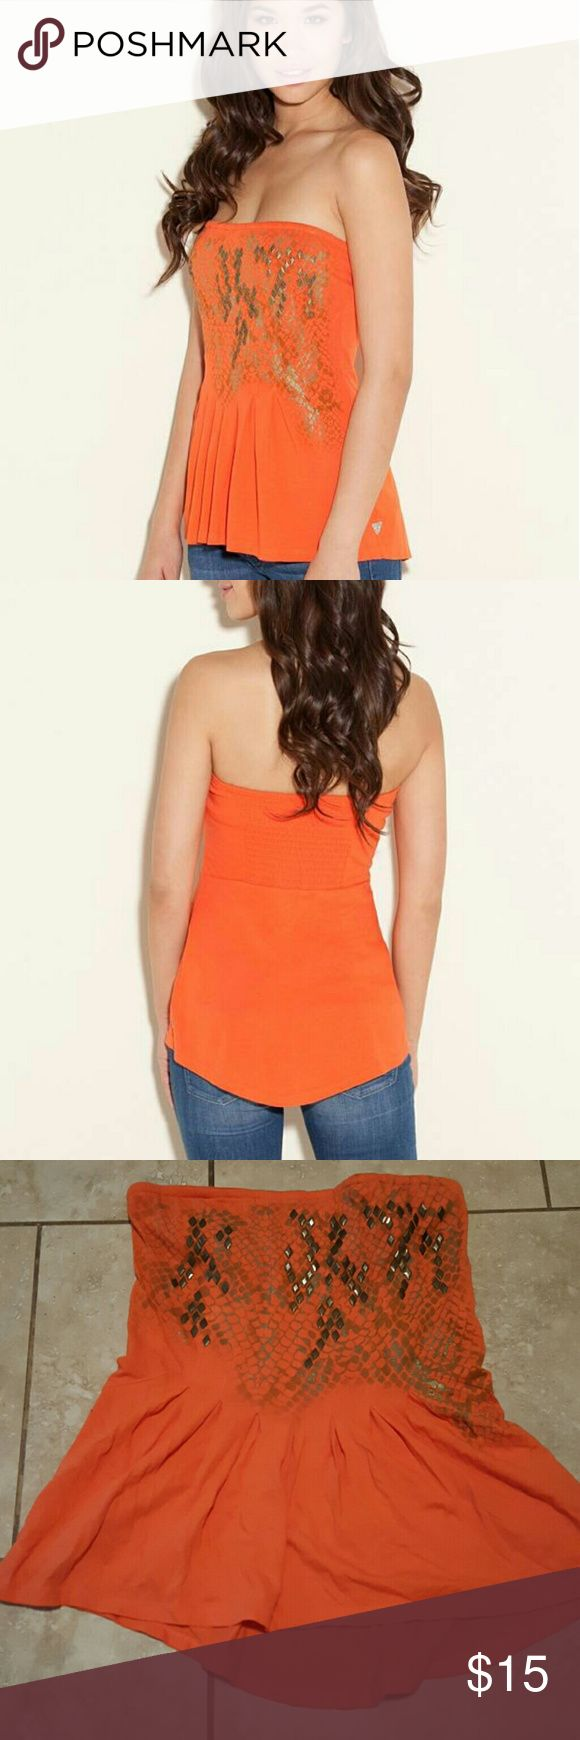 Guess Frida Orange Tube Peplum Top Size S Spend your summer days in this bright, breezy tube top. The metallic print and brass-tone studs add extra detail to the of-the-moment bright colors.    Tube top with straight neckline Scale print on front with studs. Pleats at front waist. Smocked panel at upper back.  100% Cotton Hand wash PRE-OWNED HAS MULTIPLE SPOTS WERE THE THREAD IS LOOSE OR COMING OFF Guess Tops